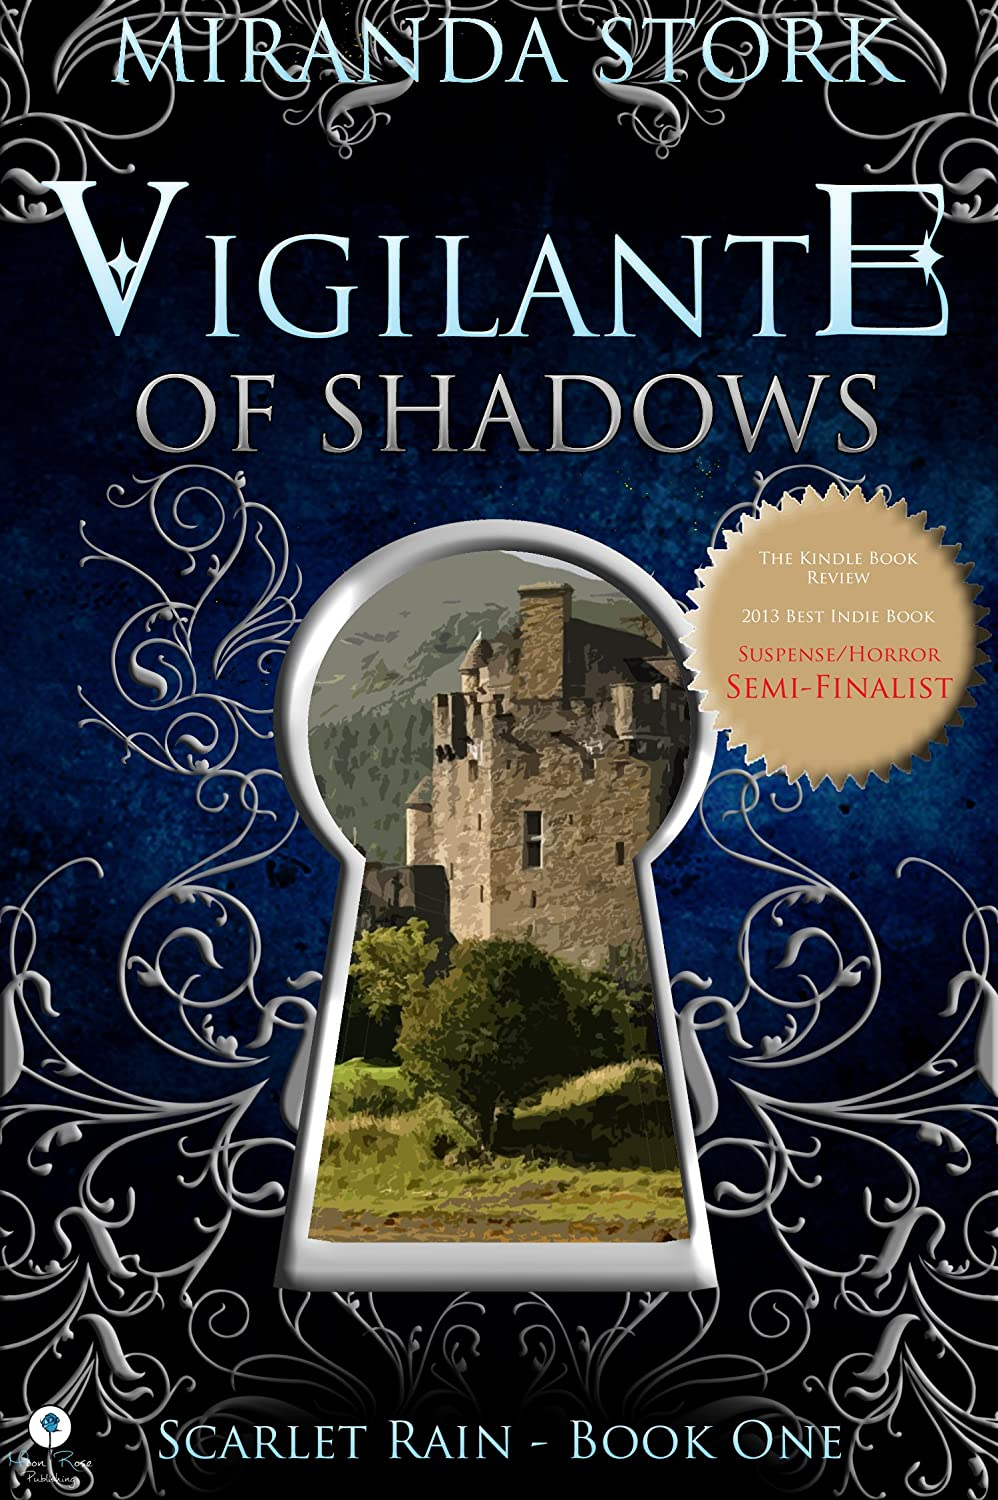 Vigilante Of Shadows (Scarlet Rain)